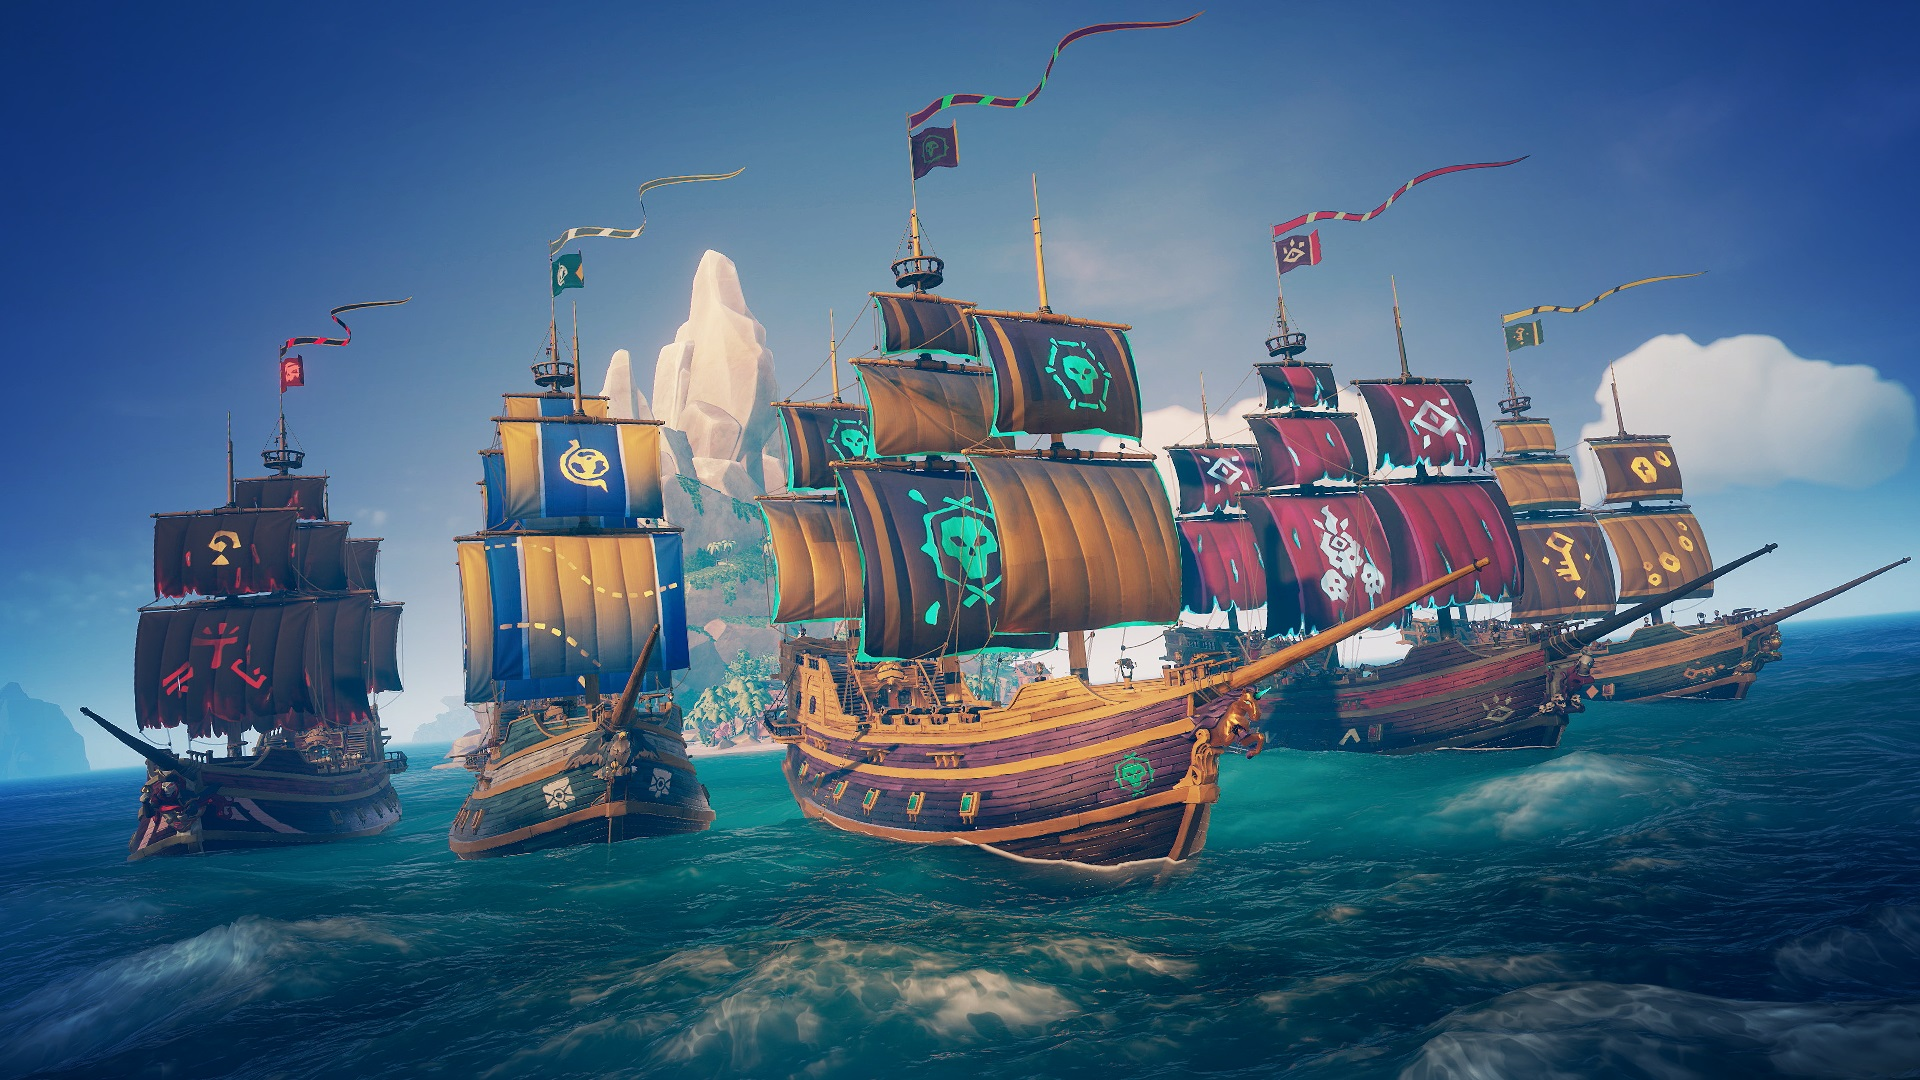 A flotilla of pirate ships in a Sea Of Thieves screenshot.